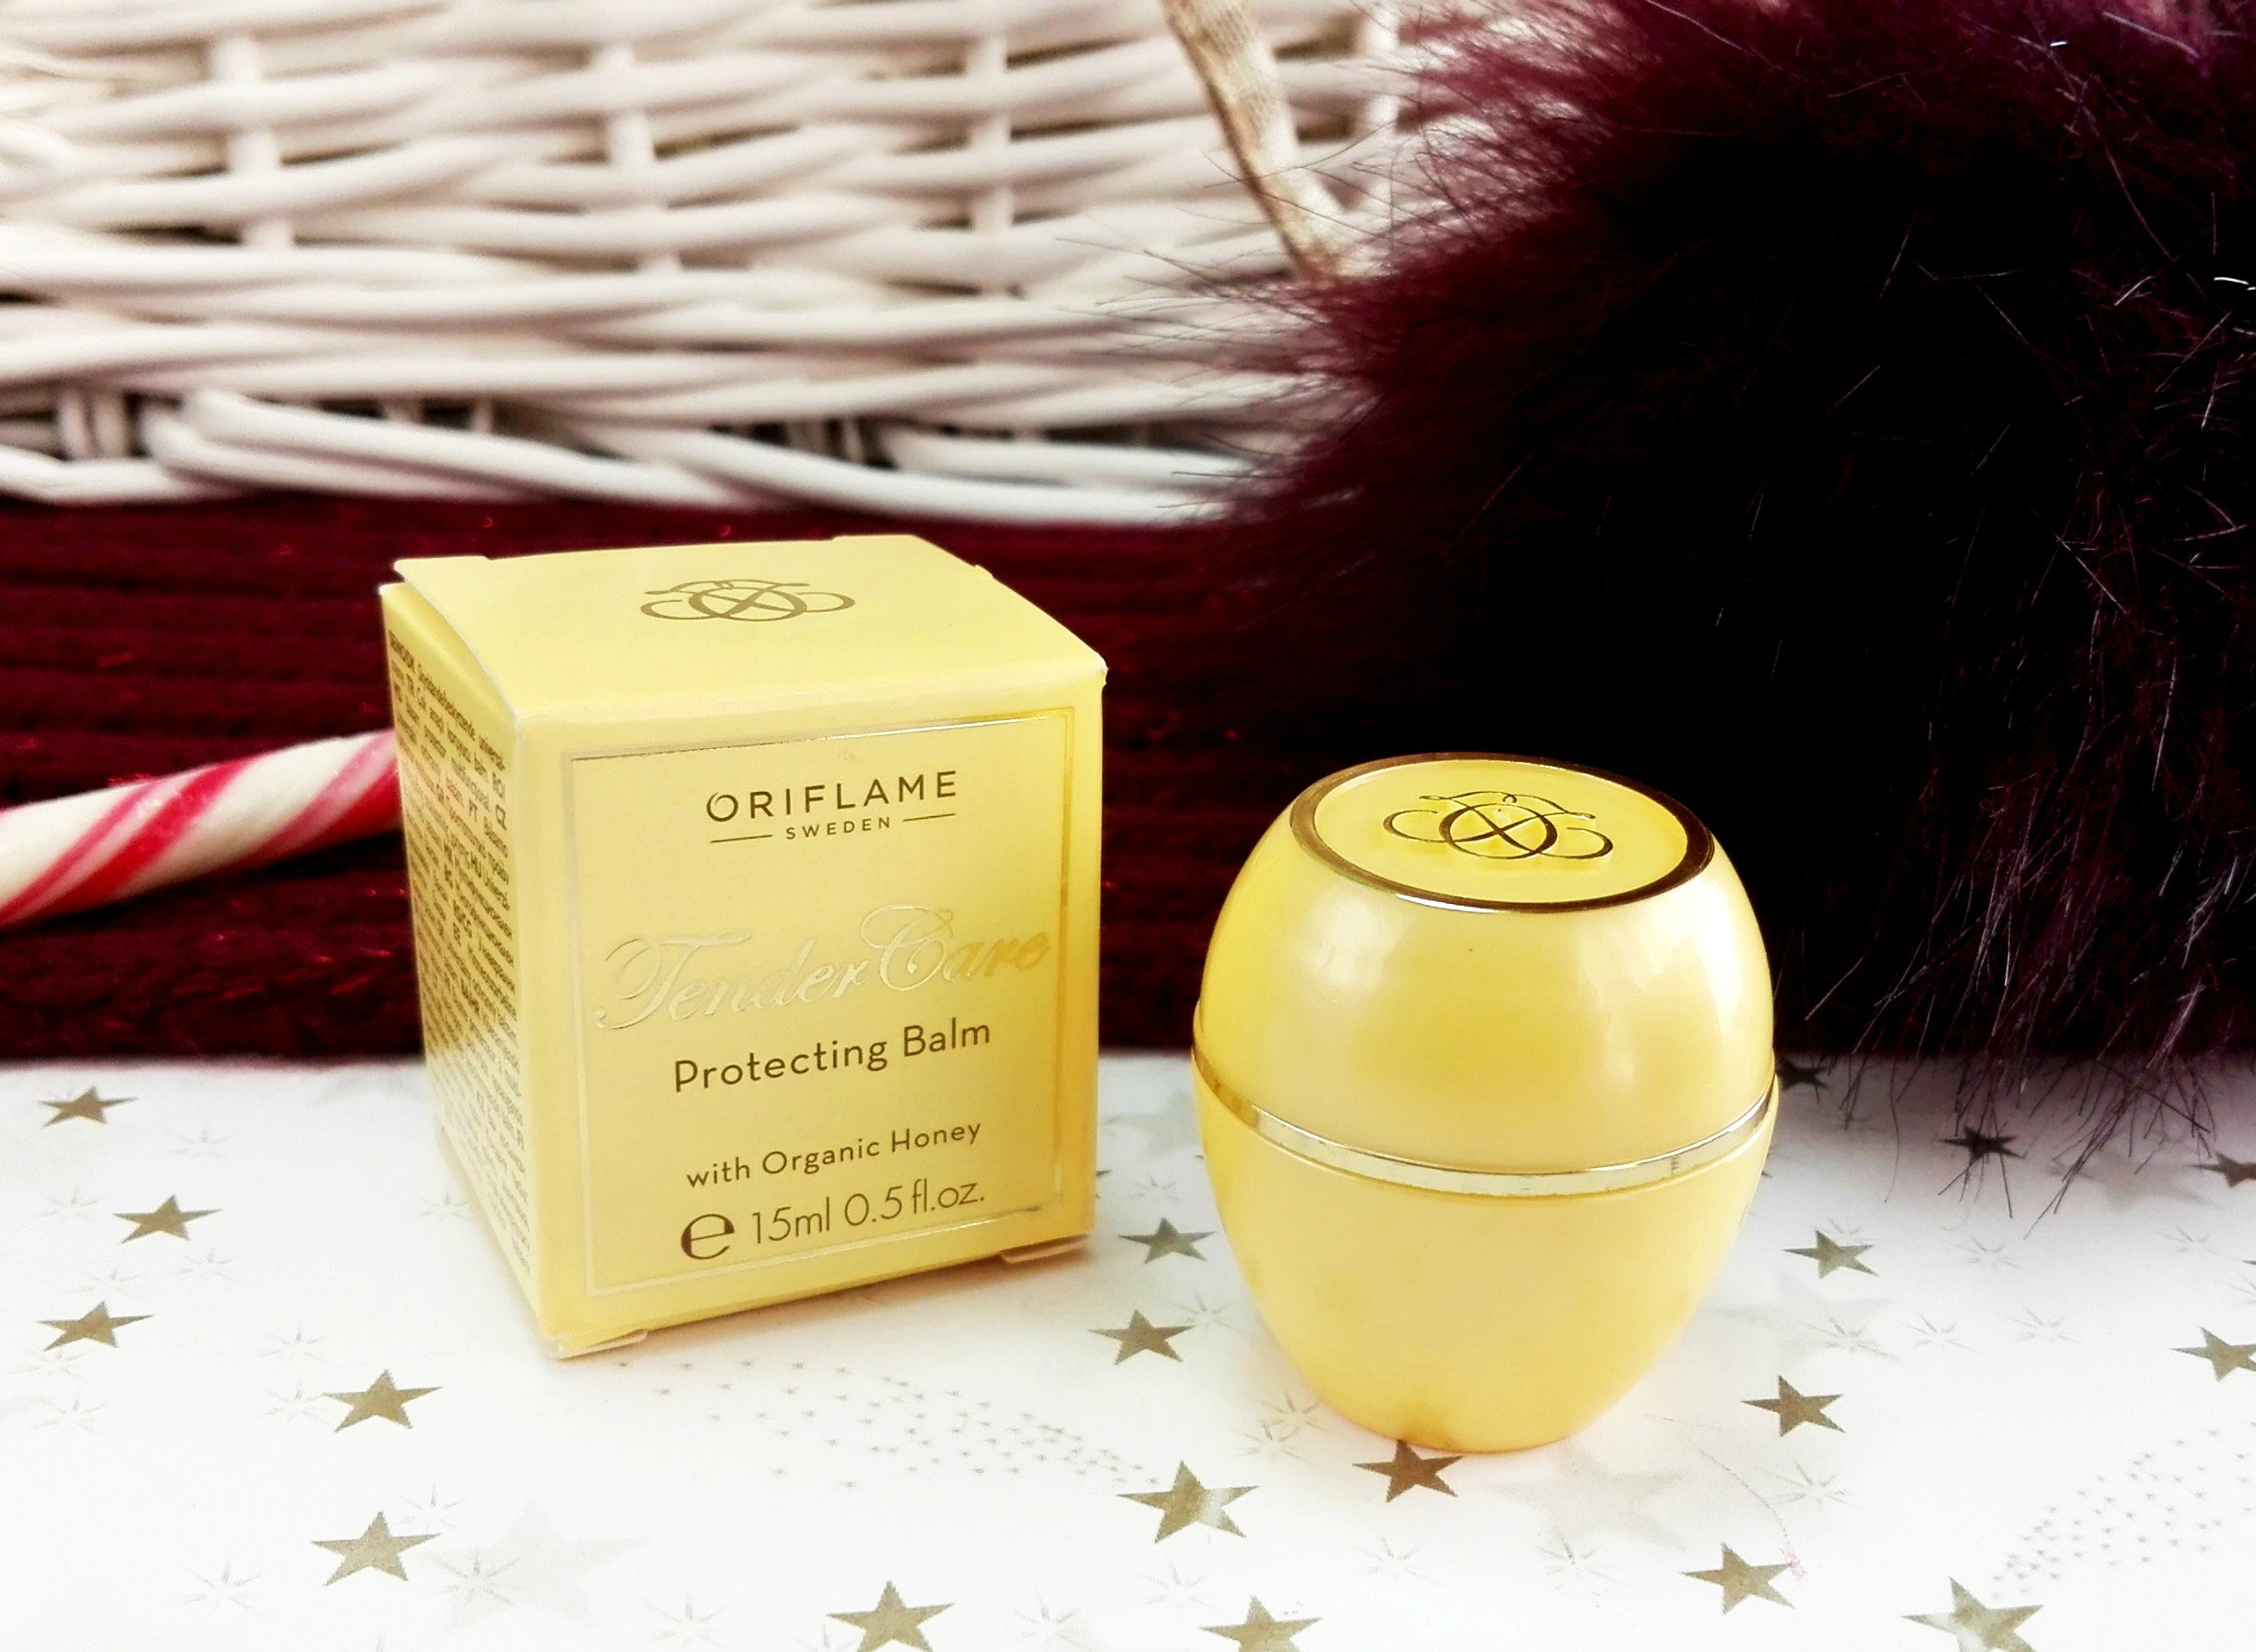 Oriflame Tender Care Protecting Balm-Protecting balm-By aneesha